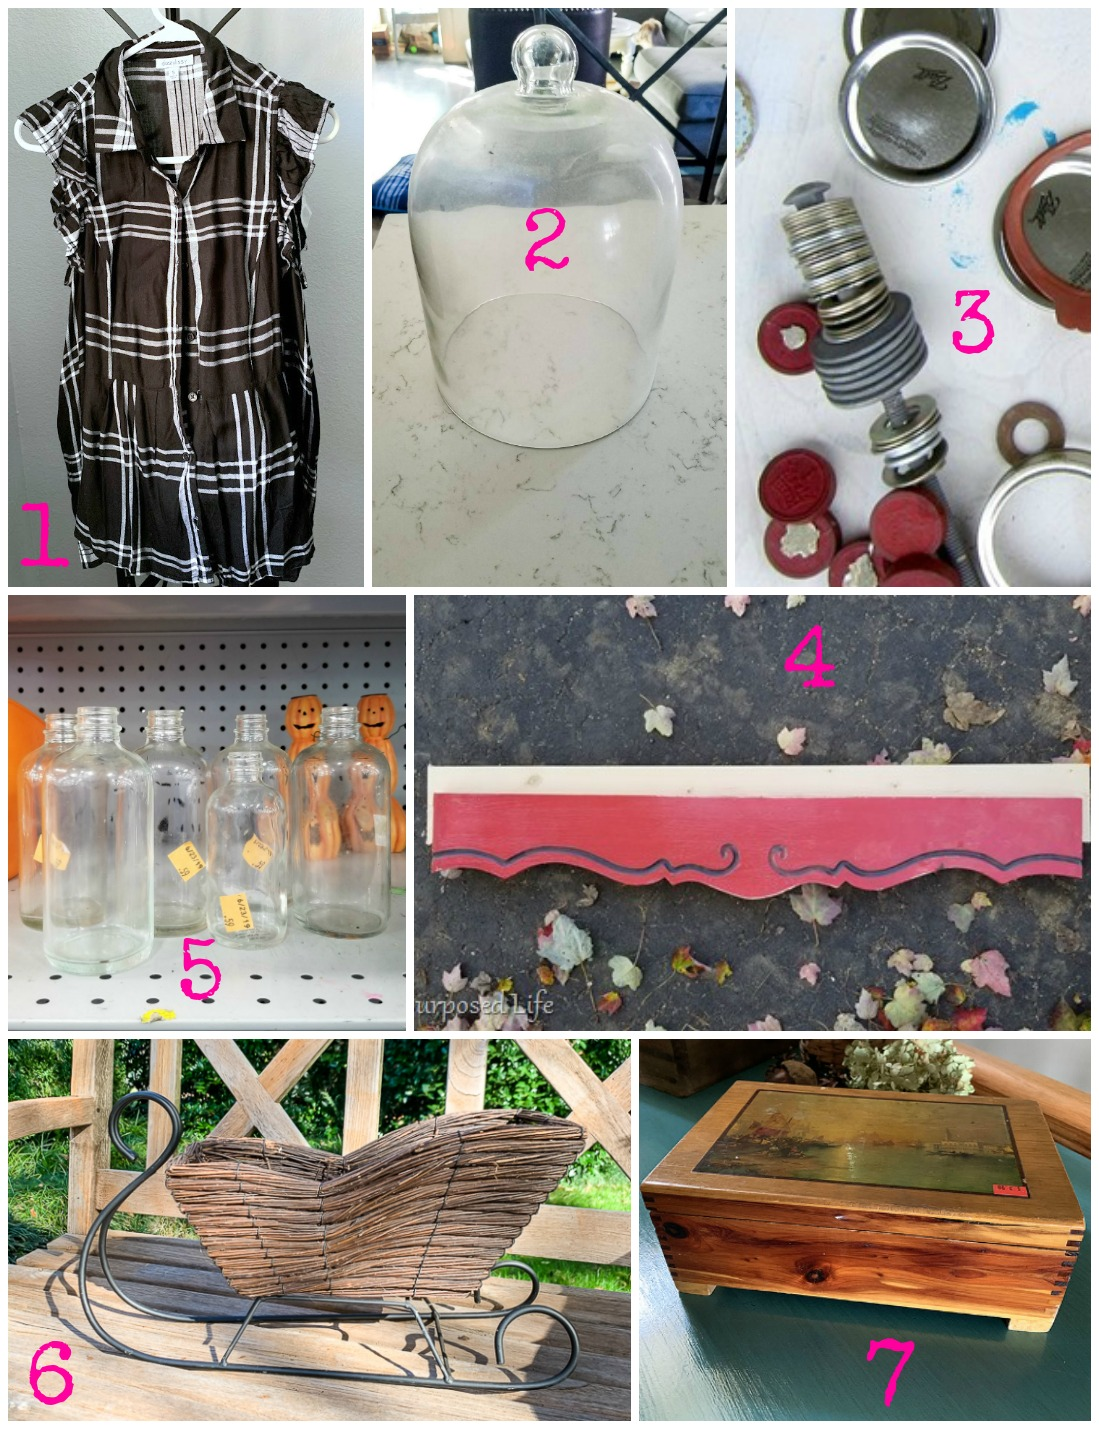 Thrift store makeovers and upcycling ideas for the best repurposing bloggers in November 2019